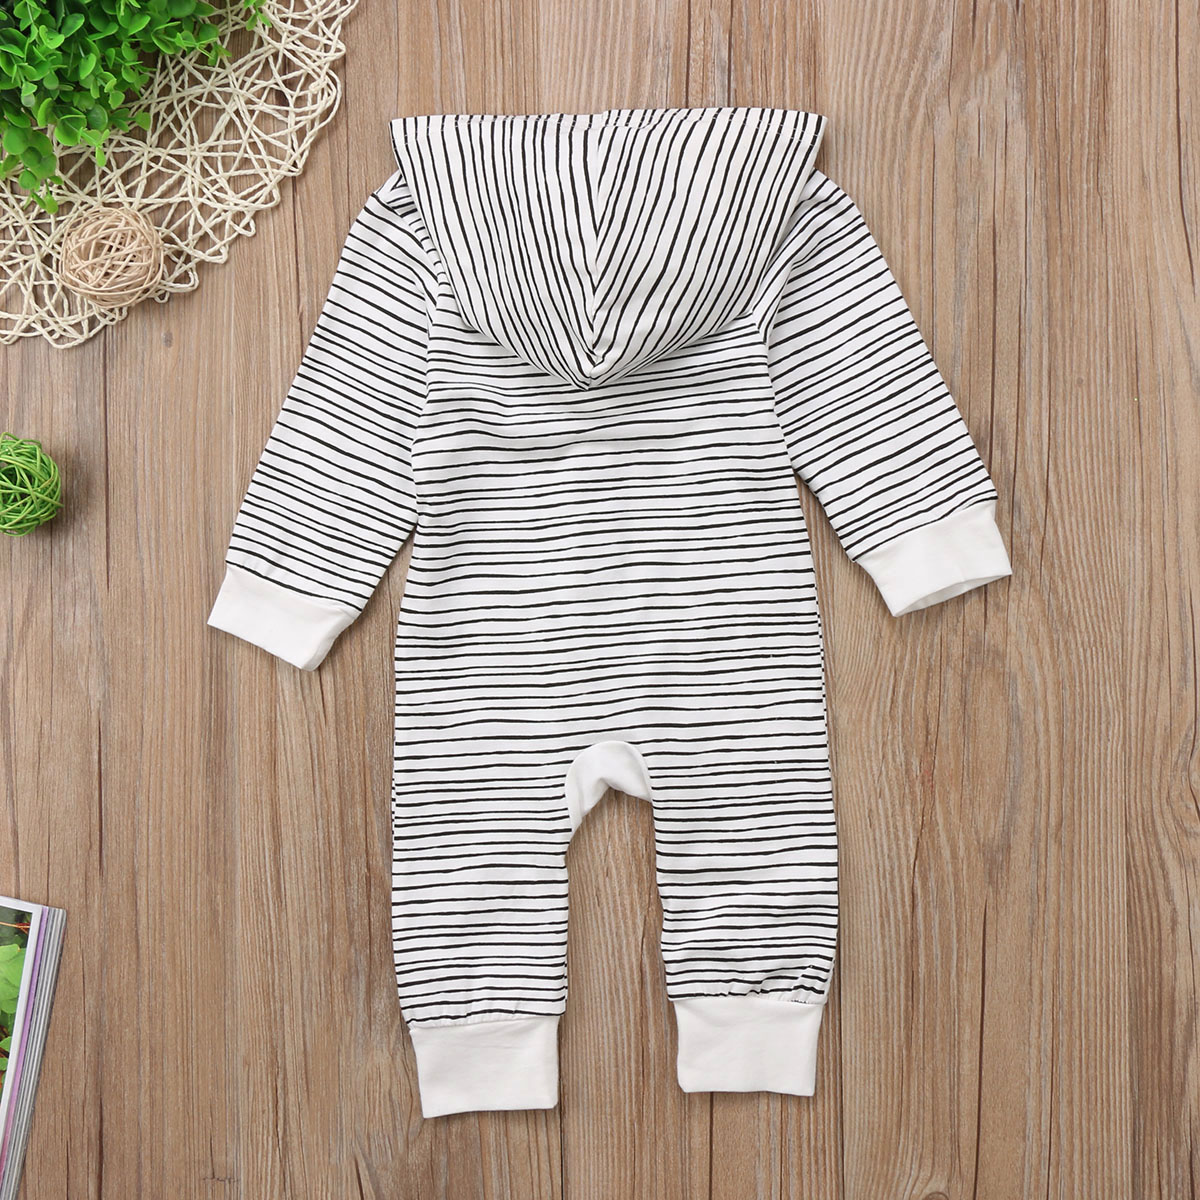 HTB14GKSelTH8KJjy0Fiq6ARsXXam 2018 Brand New Toddler Newborn Baby Boy Girl Warm Infant Romper Striped Jumpsuit Hooded Clothes Long Sleeve Outfit